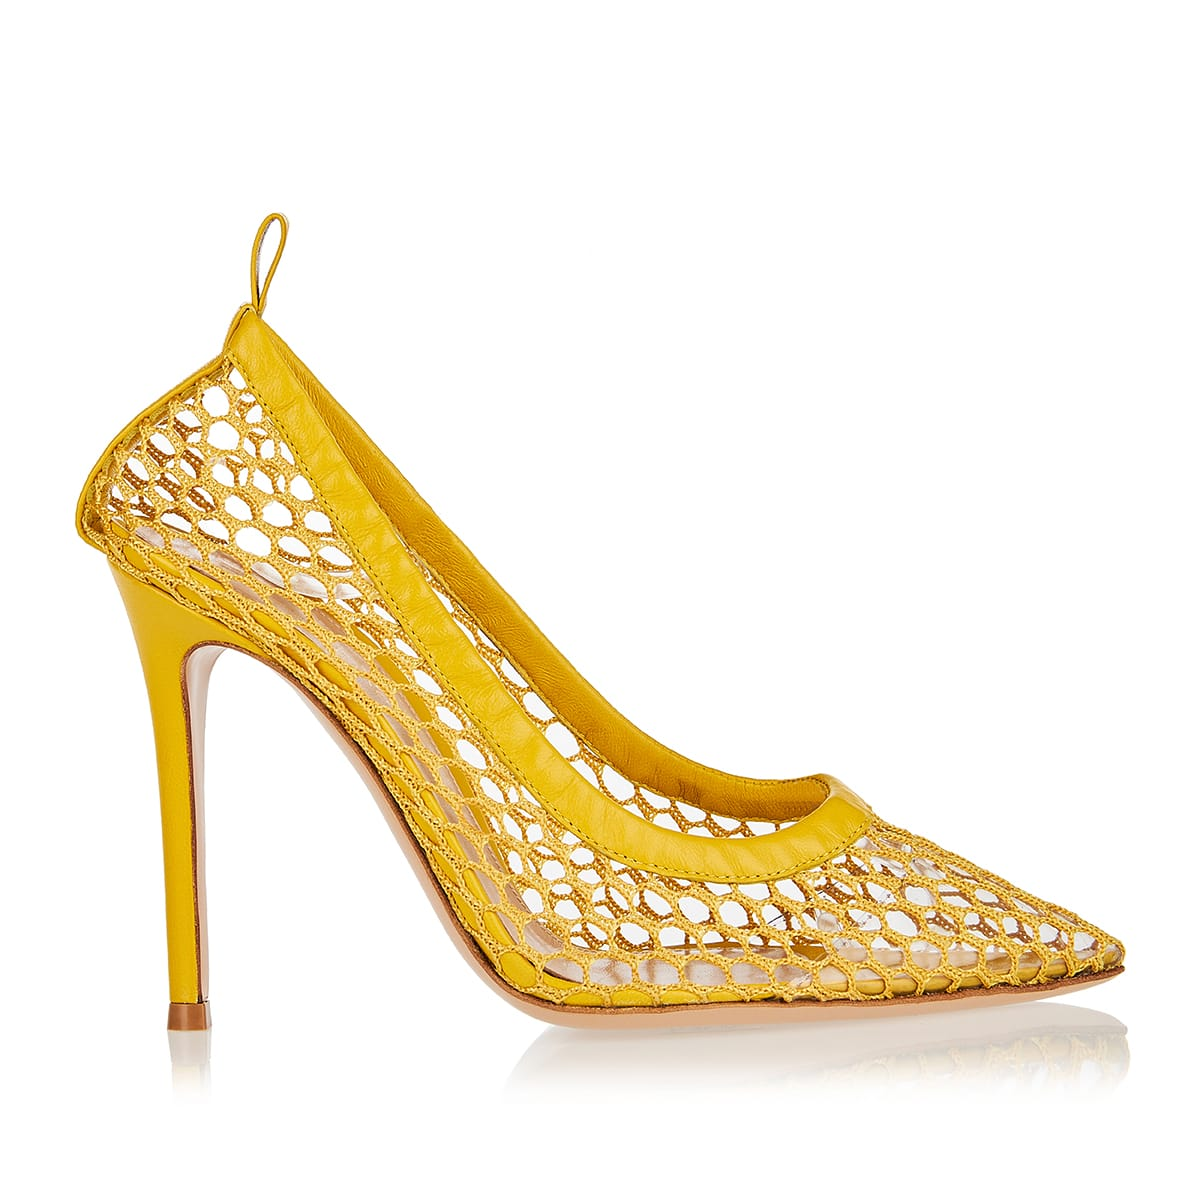 Alisia 105 leather and mesh pumps